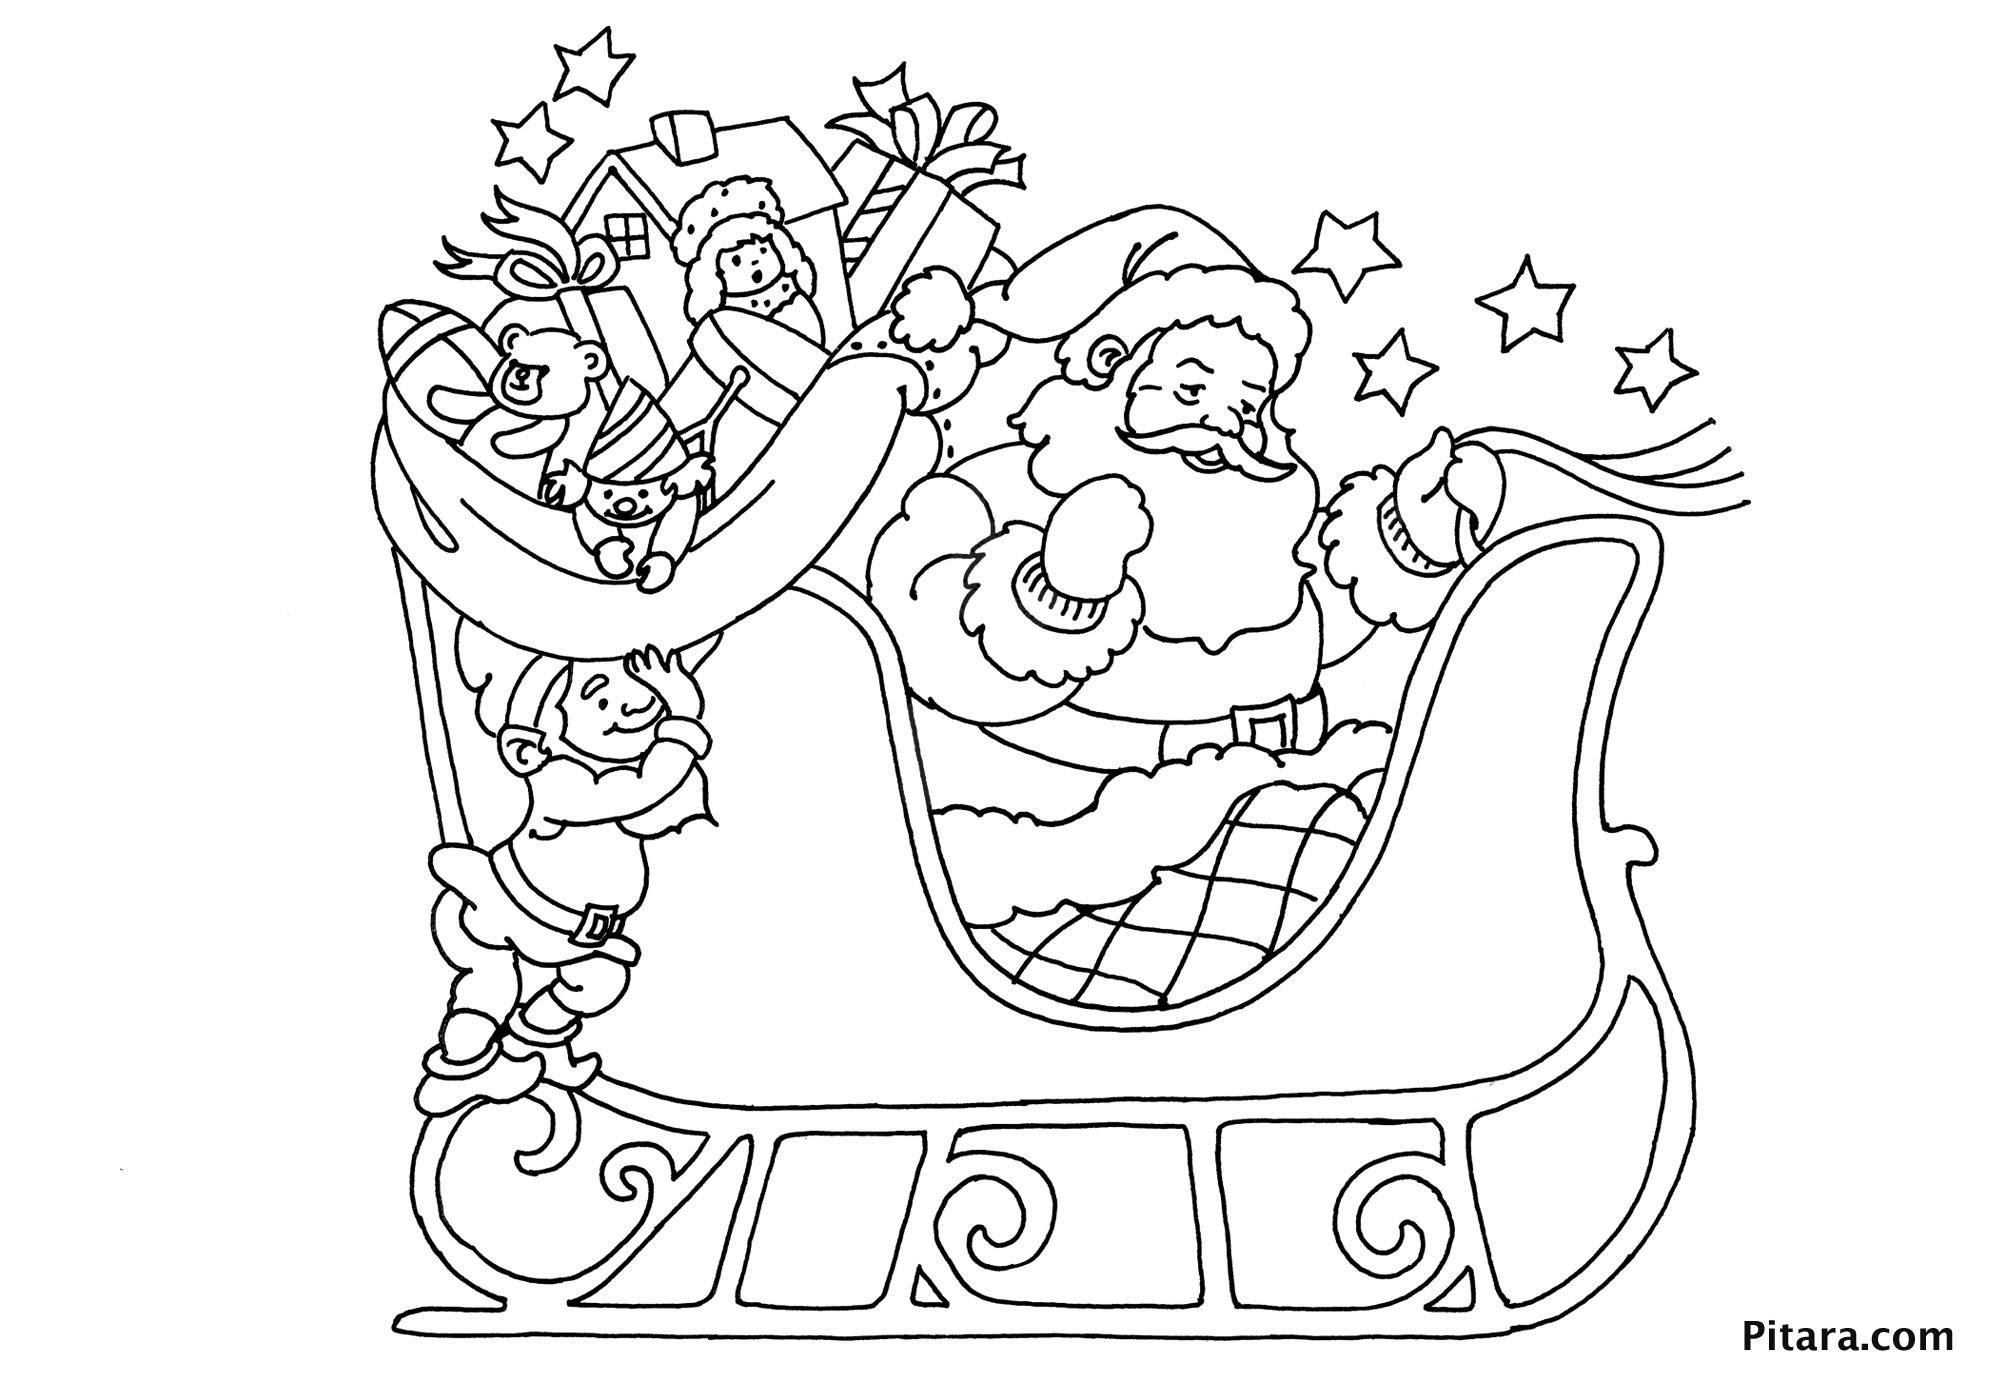 santa and his sleigh coloring pages santa in his sleigh colouring pages clip art library his pages sleigh santa and coloring